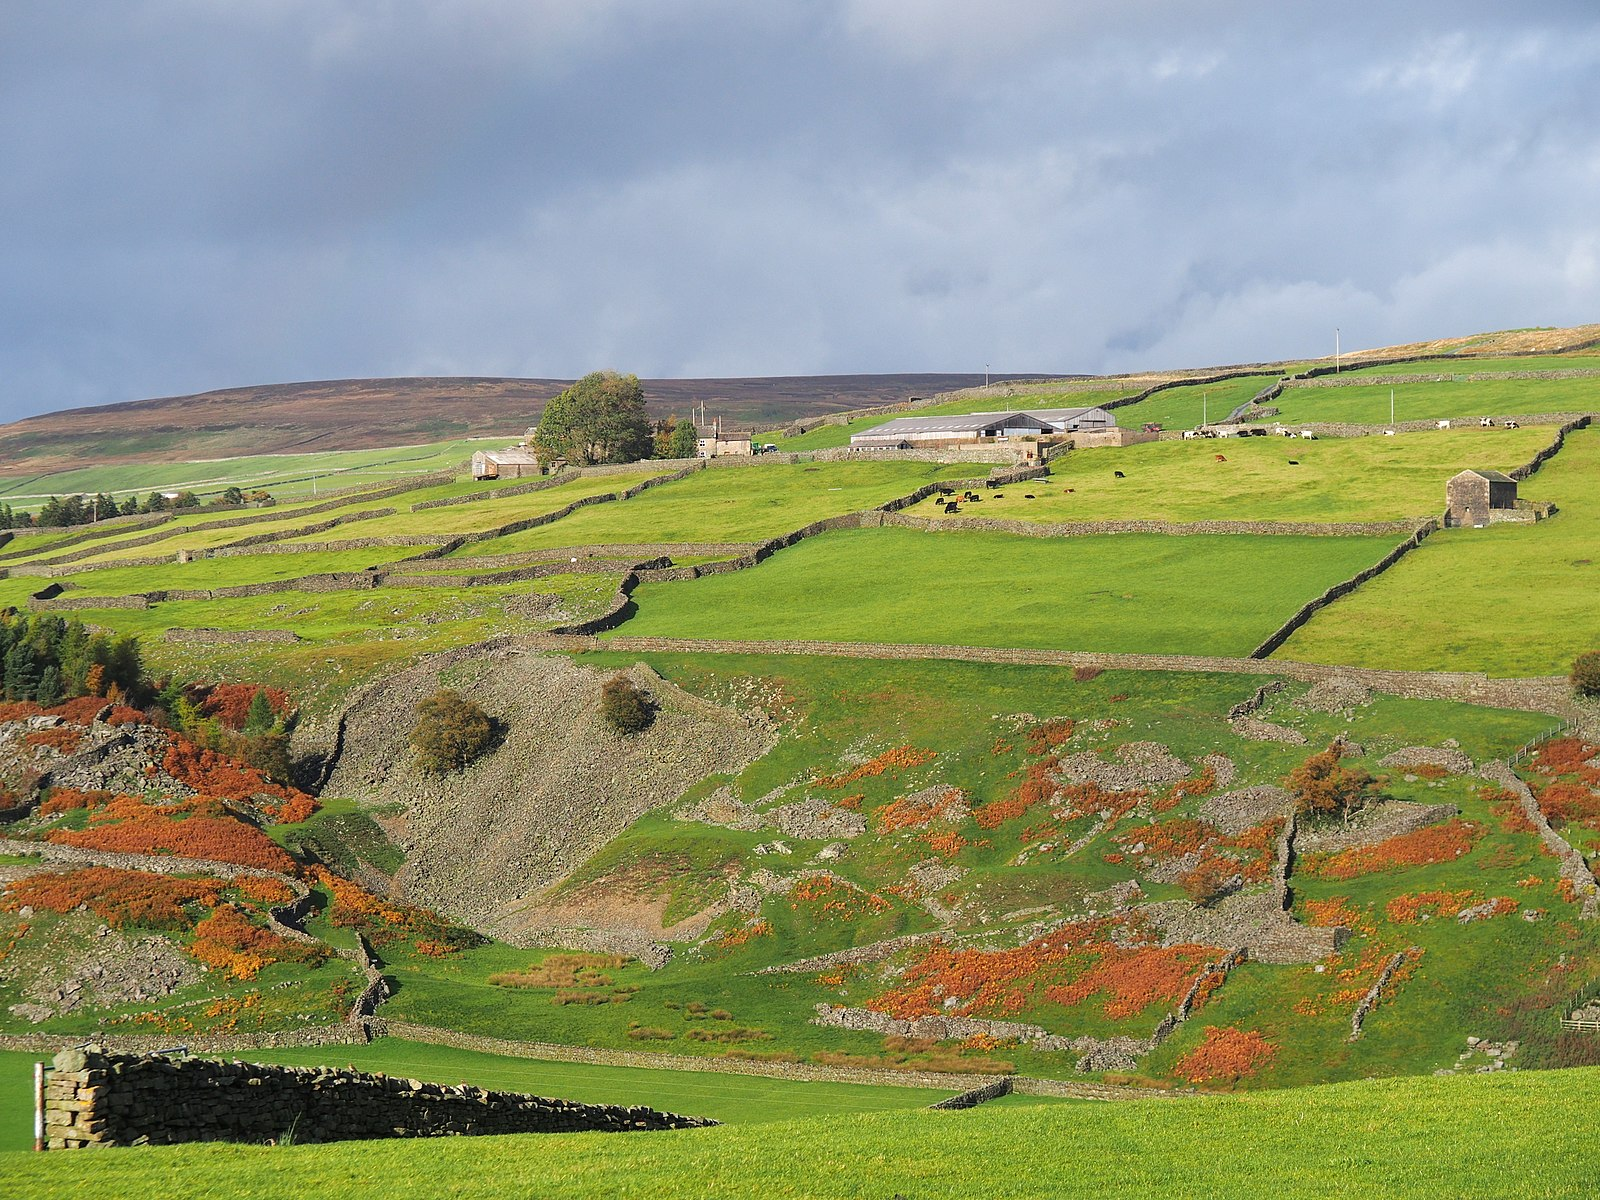 Luxury Cottages in the Yorkshire Dales